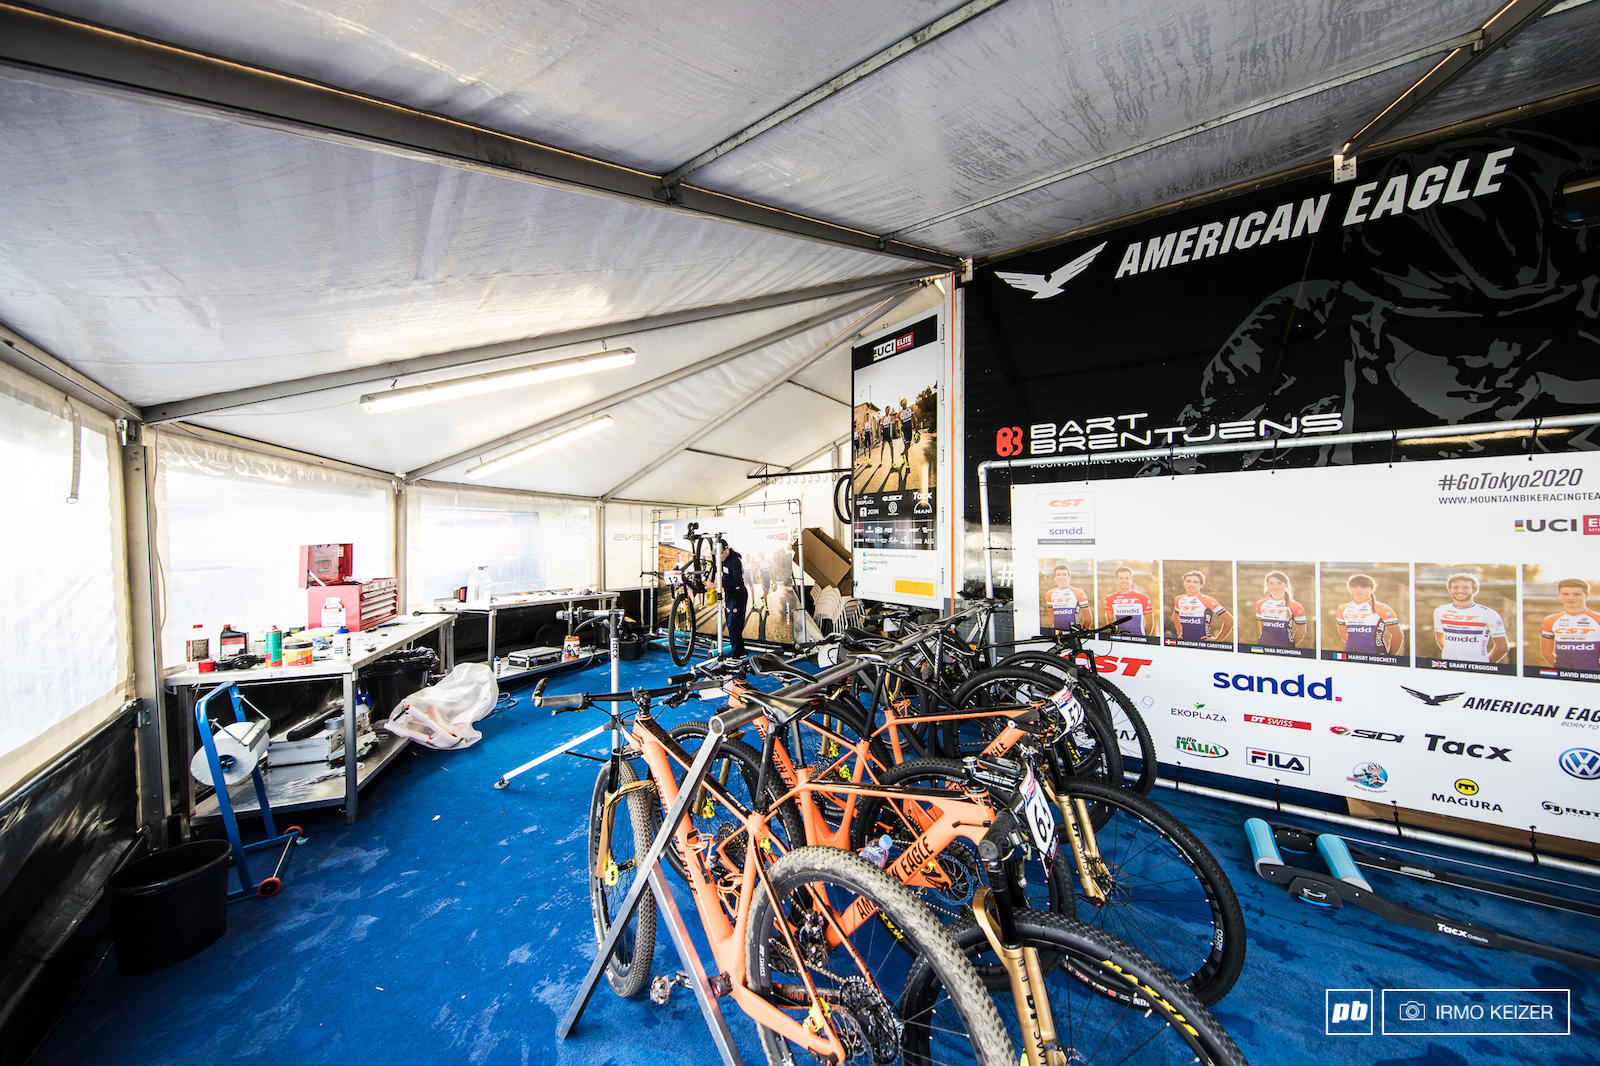 Inside the space is divided into three distinct areas. The left part is setup for the team s two mechanics. Riders bikes which are ready to ride are hung in the rack and there s space for riders to warm up on the rollers. The mechanics have direct access to spare parts and bikes via the truck s back door.